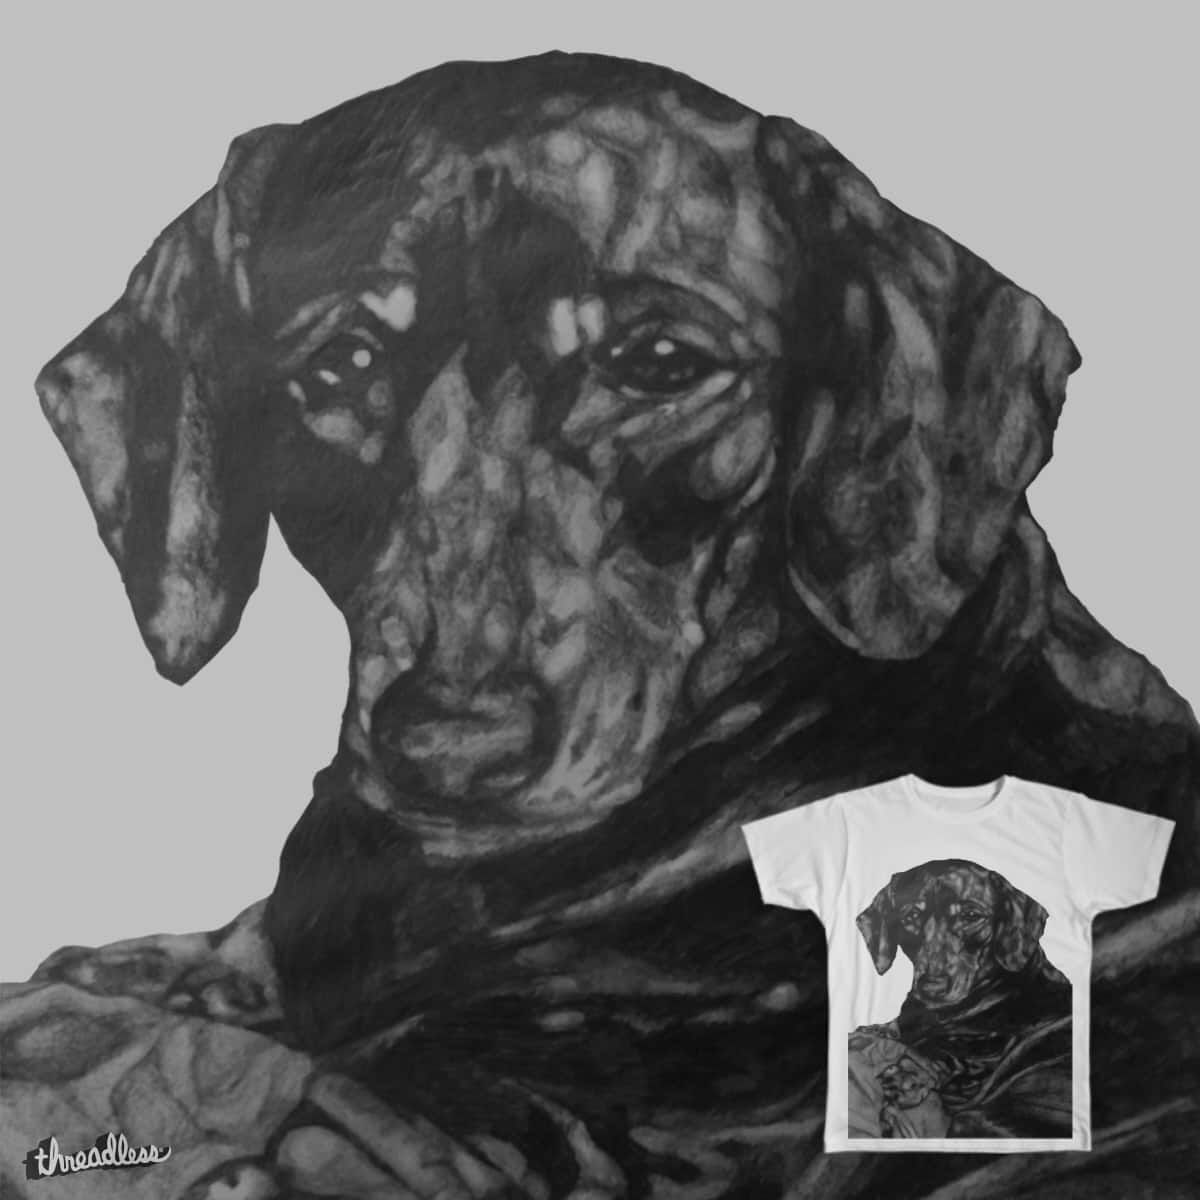 Daschund by Nmaiklem on Threadless